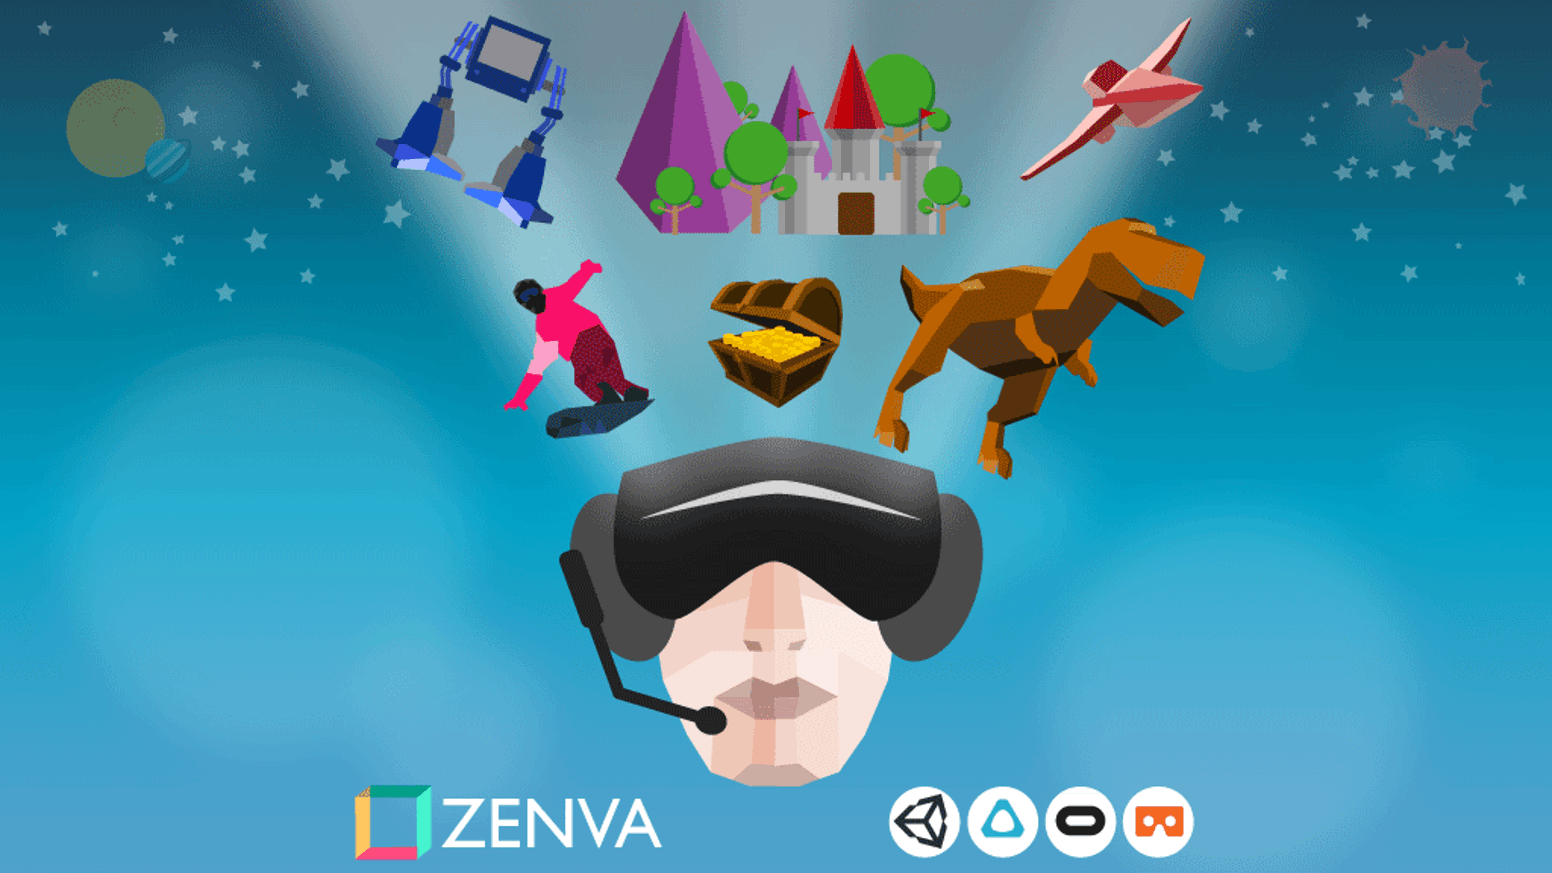 Enroll in the world's most comprehensive online course on VR game development with Unity. Learn by building 15 projects!